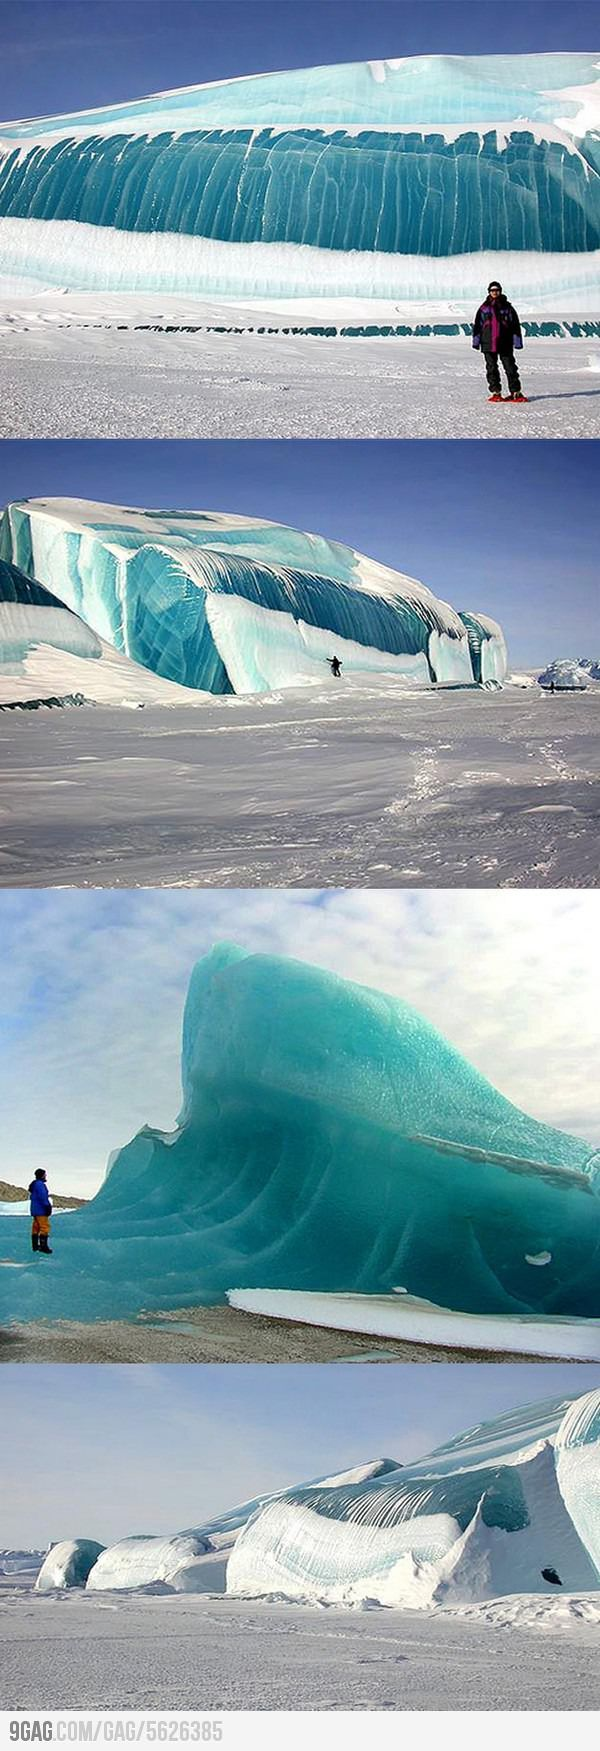 Frozen wave in Antarctica. This is one of the coolest things I've ever seen. Is it even possible to freeze something at that speed?